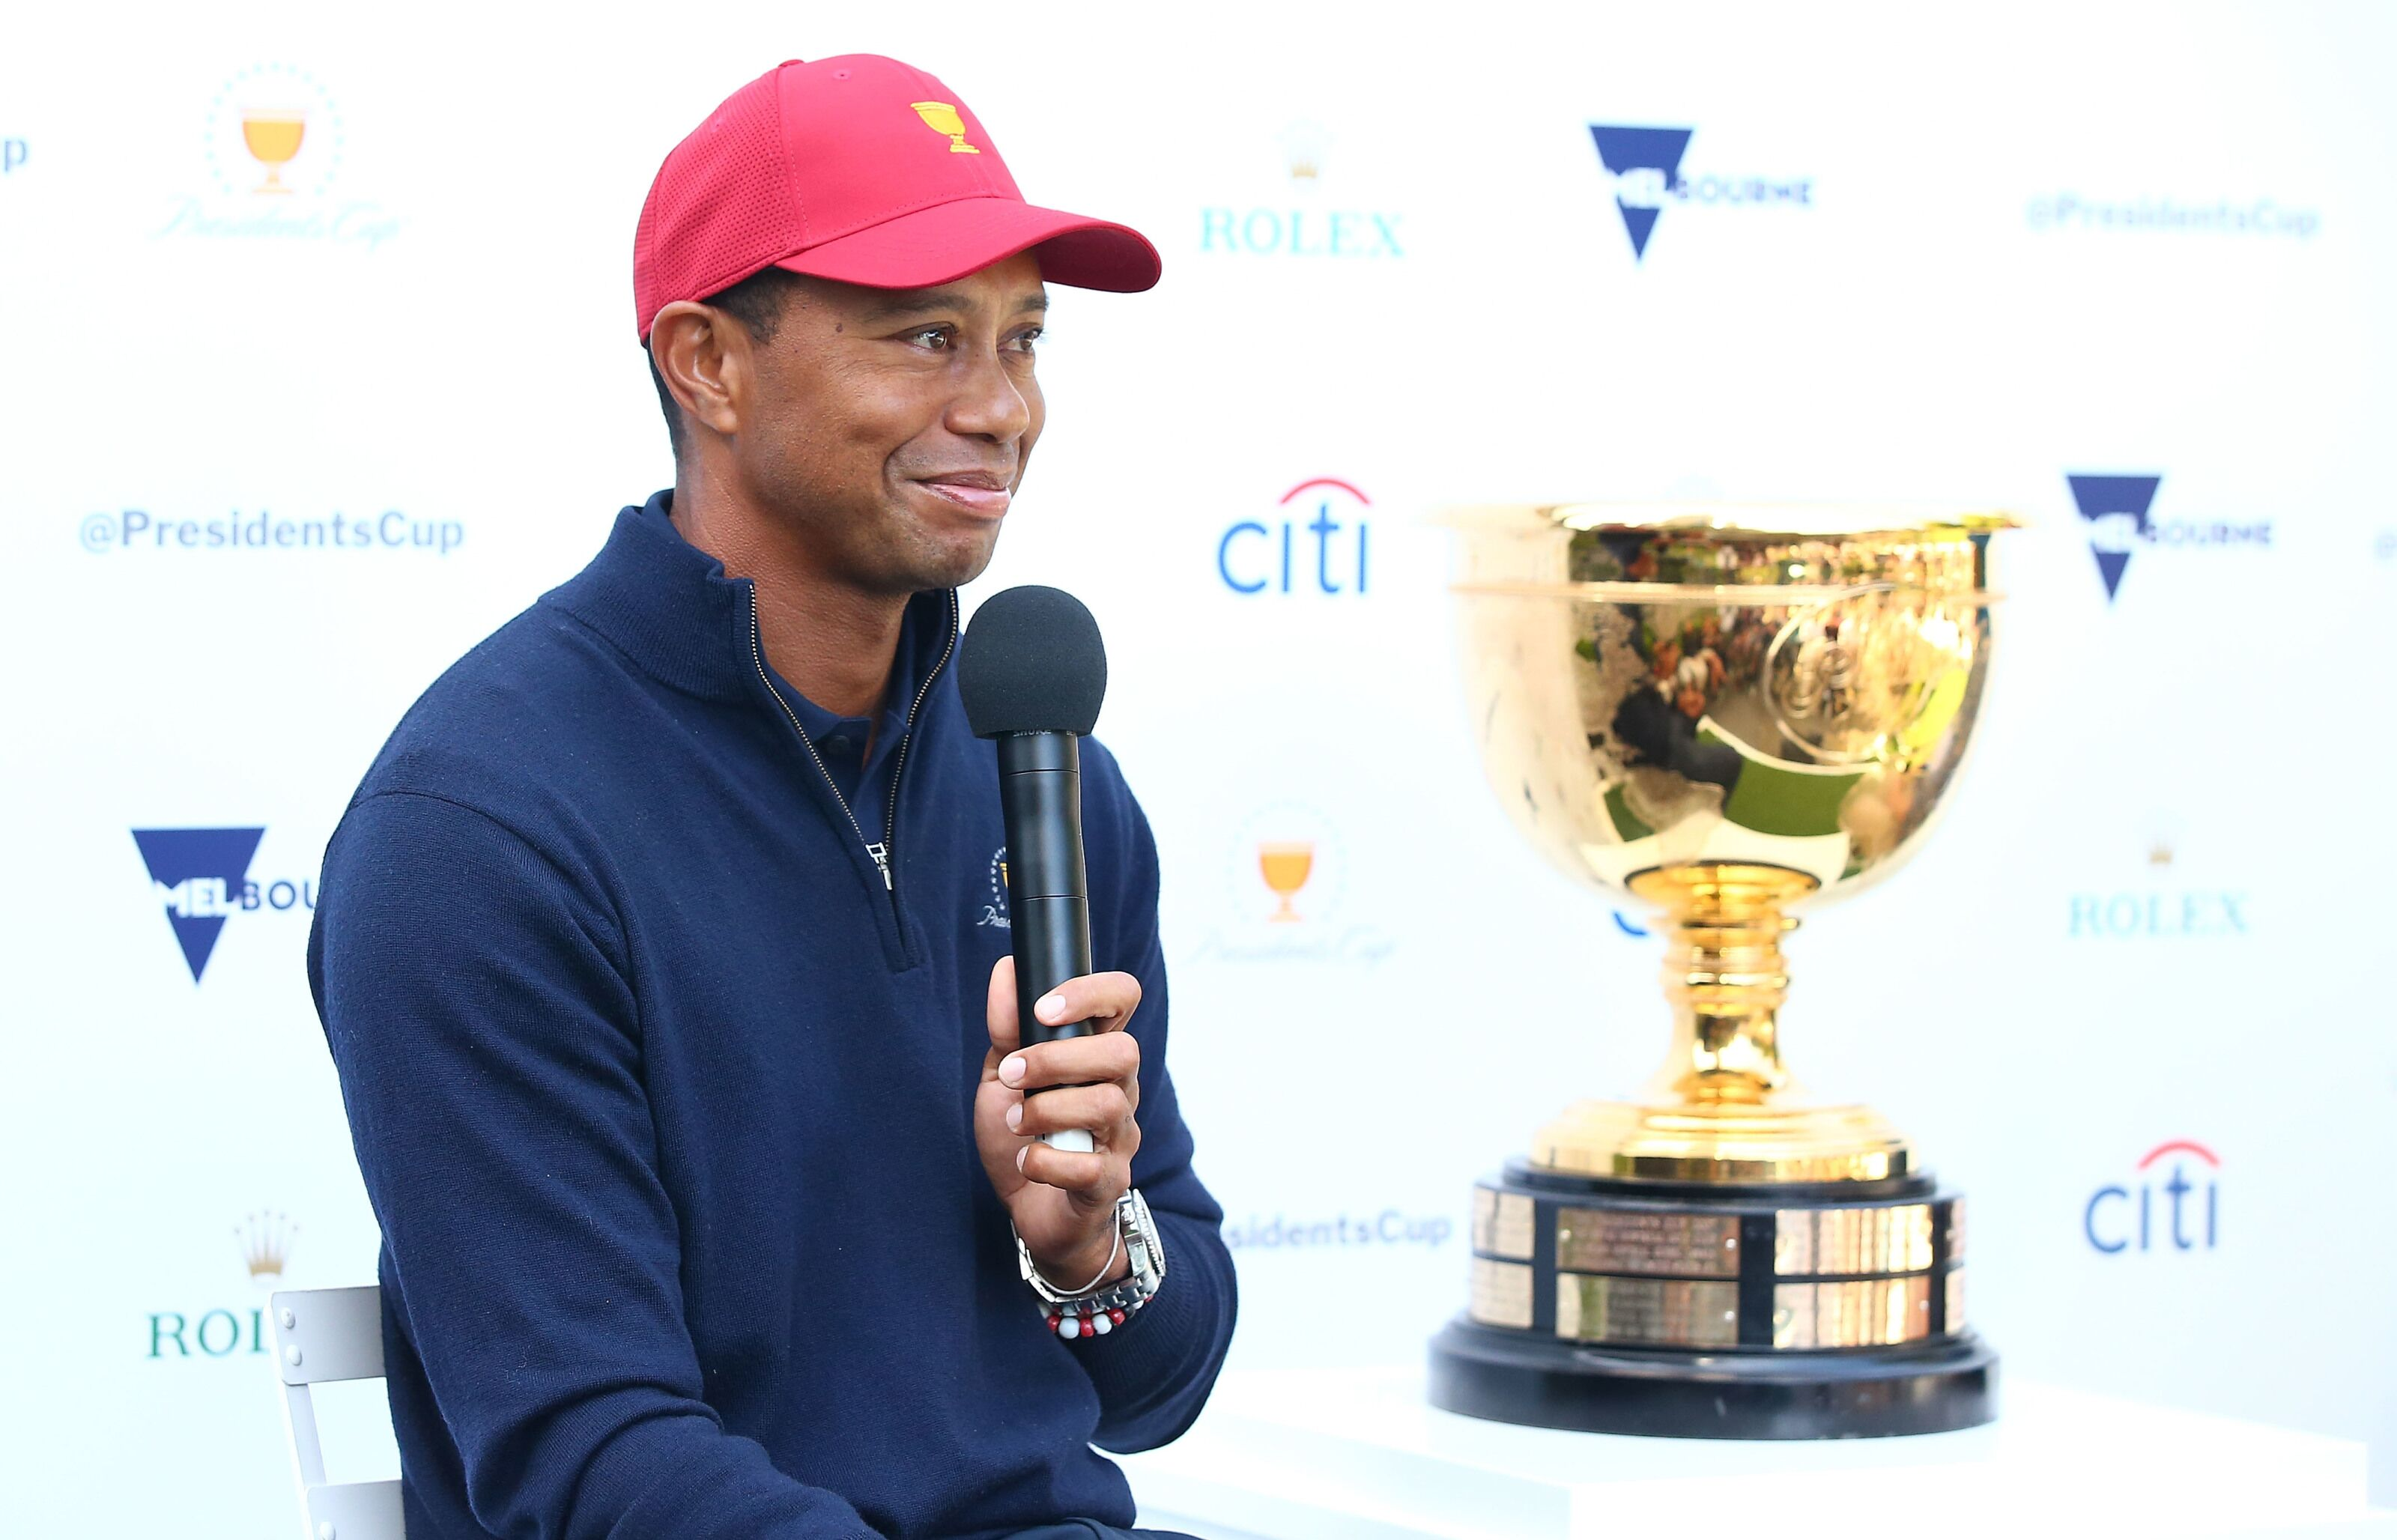 Presidents Cup 2019: Automatic qualifiers set for Team USA